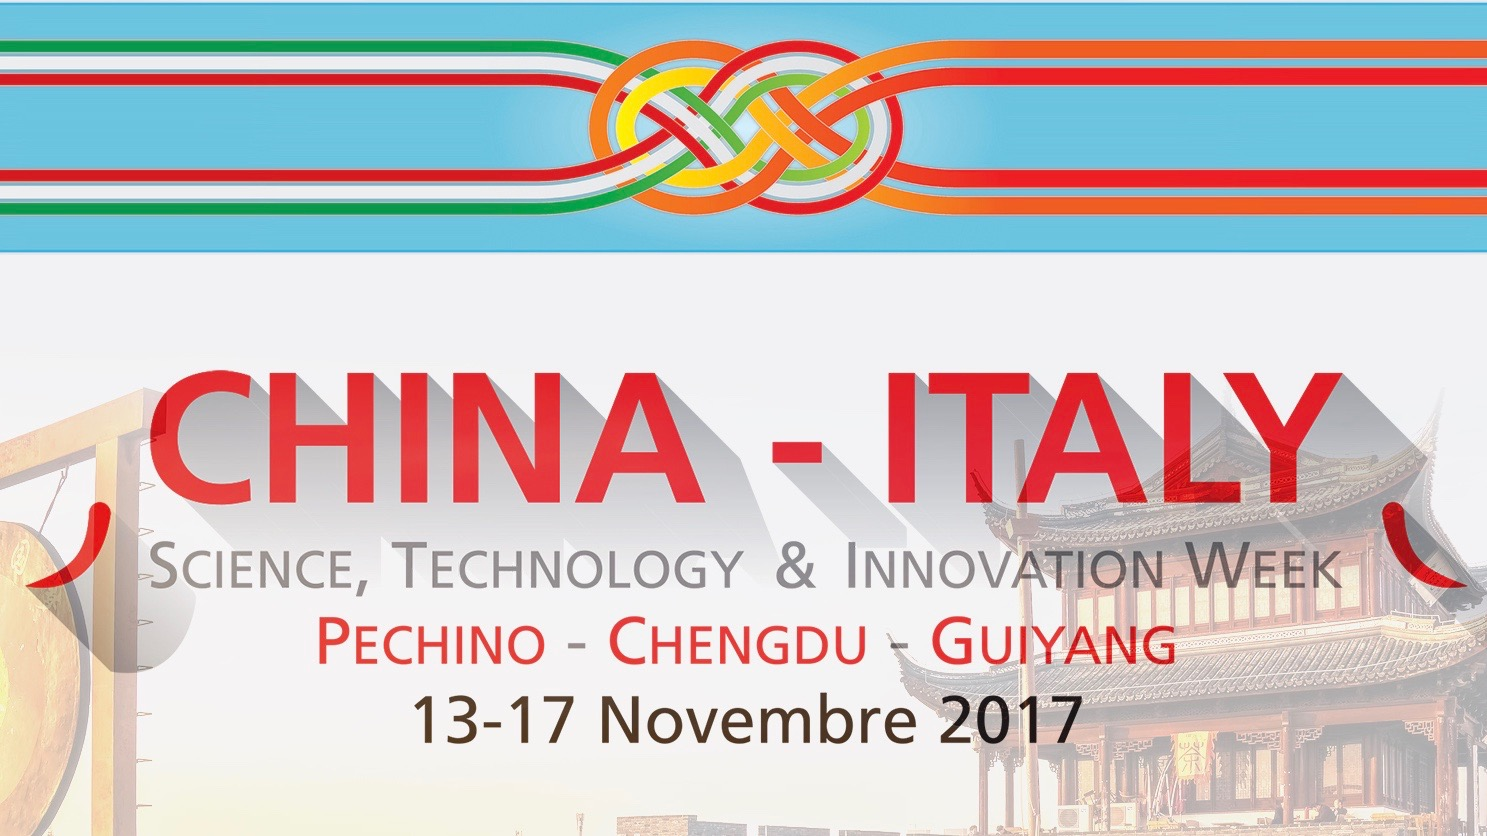 China-Italy Science, Technology & Innovation Week: l'evento per la cooperazione tra eccellenze in ambito scientifico e tecnologico